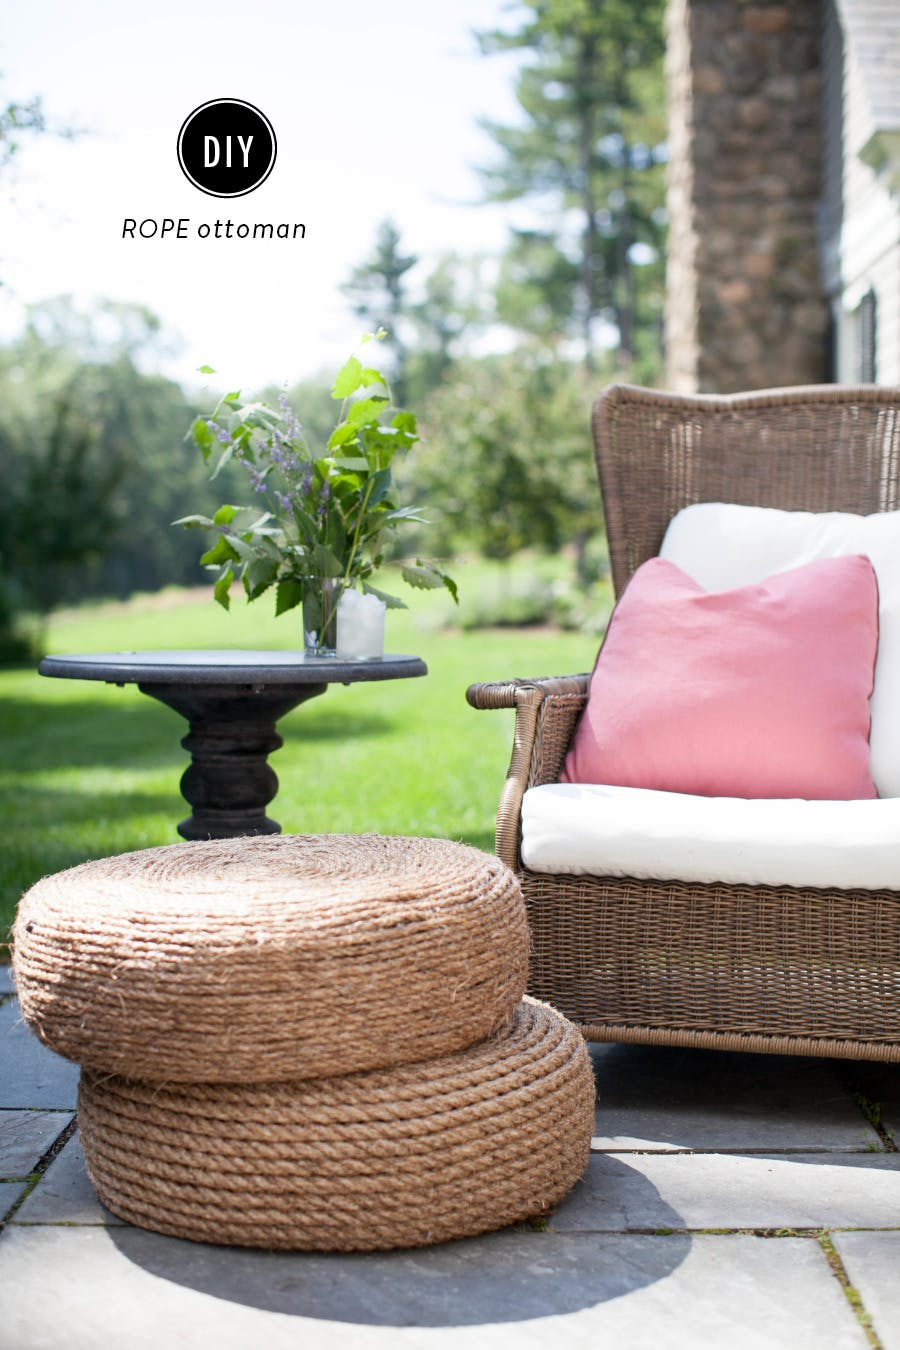 DIY rope ottoman completed